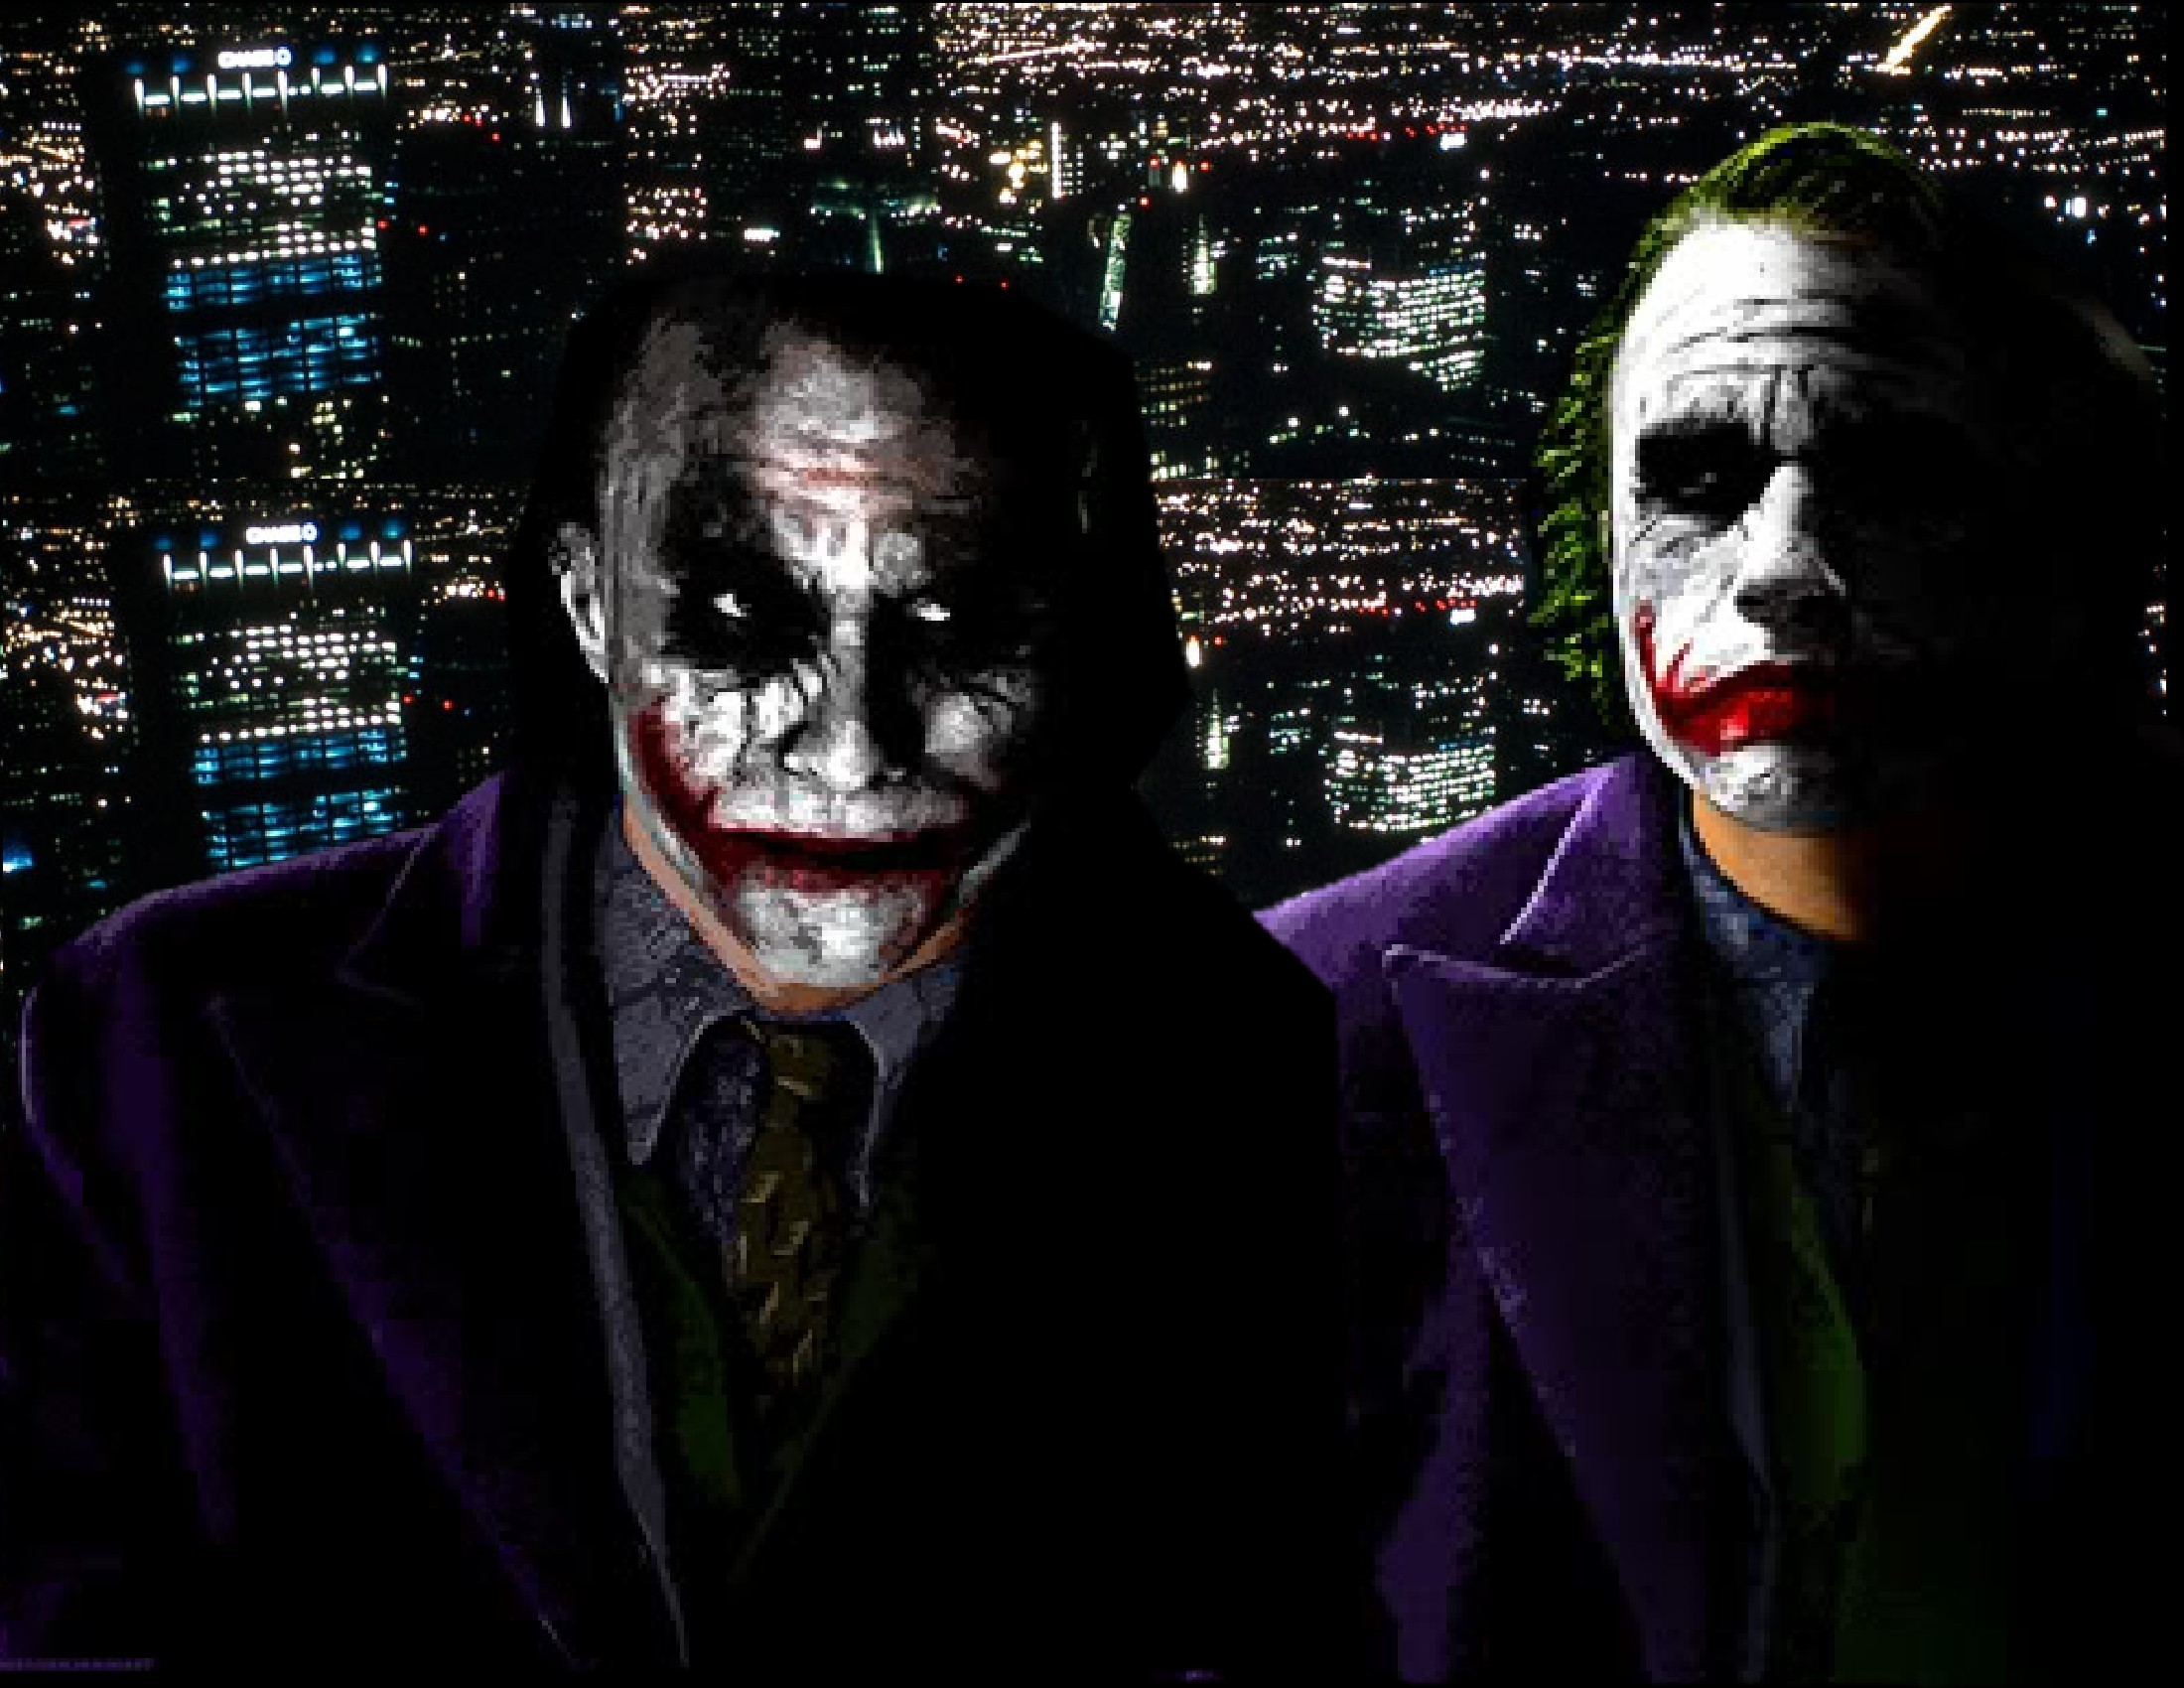 Joker Gotham City